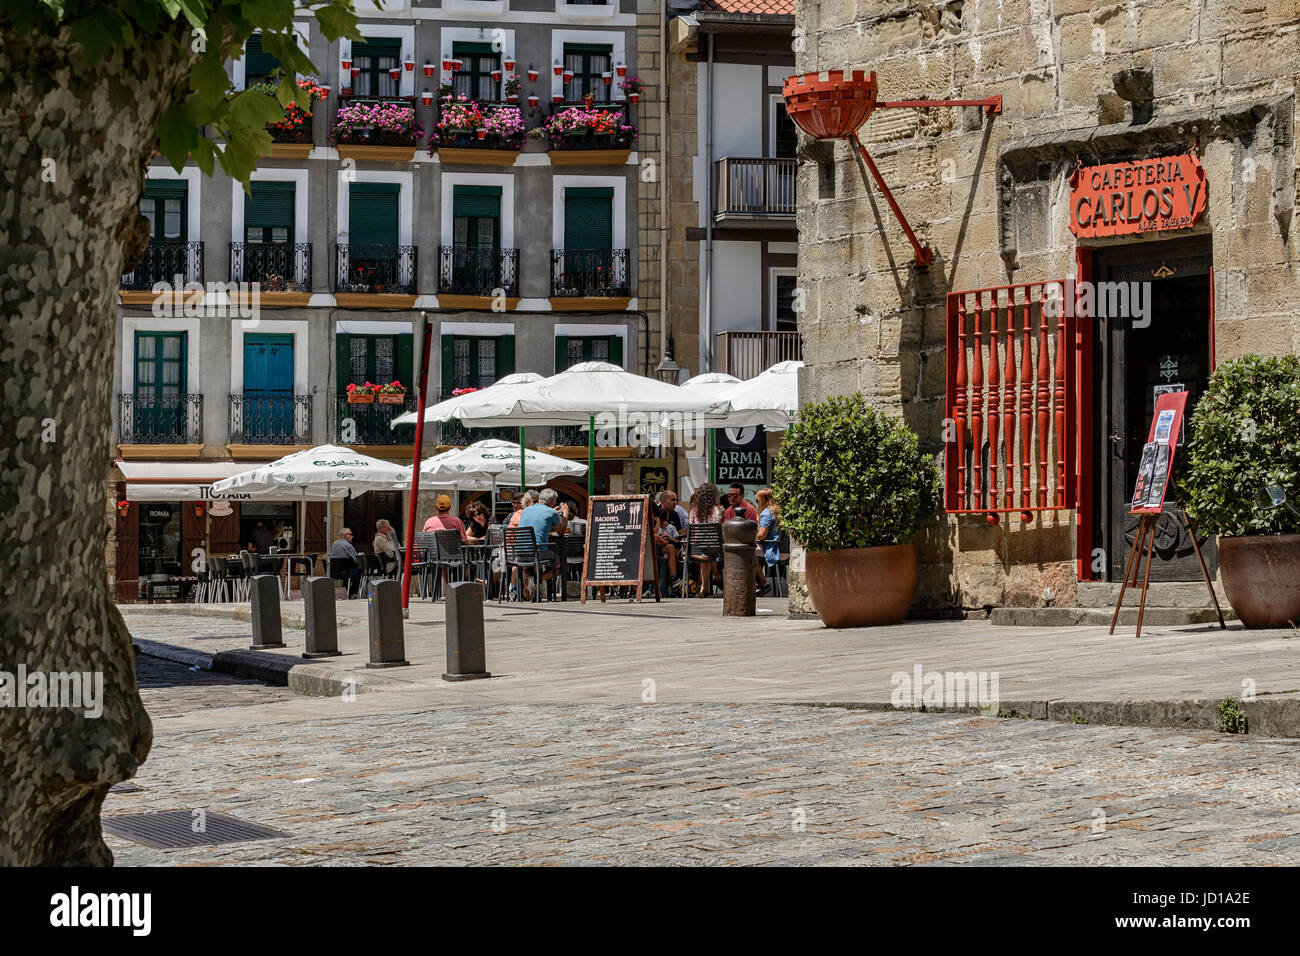 Arma plaza and cafeteria of the Hotel Carlos V in the center of the town of Hondarribia (Fuenterrabia) Guipuzkoa, - Stock Image